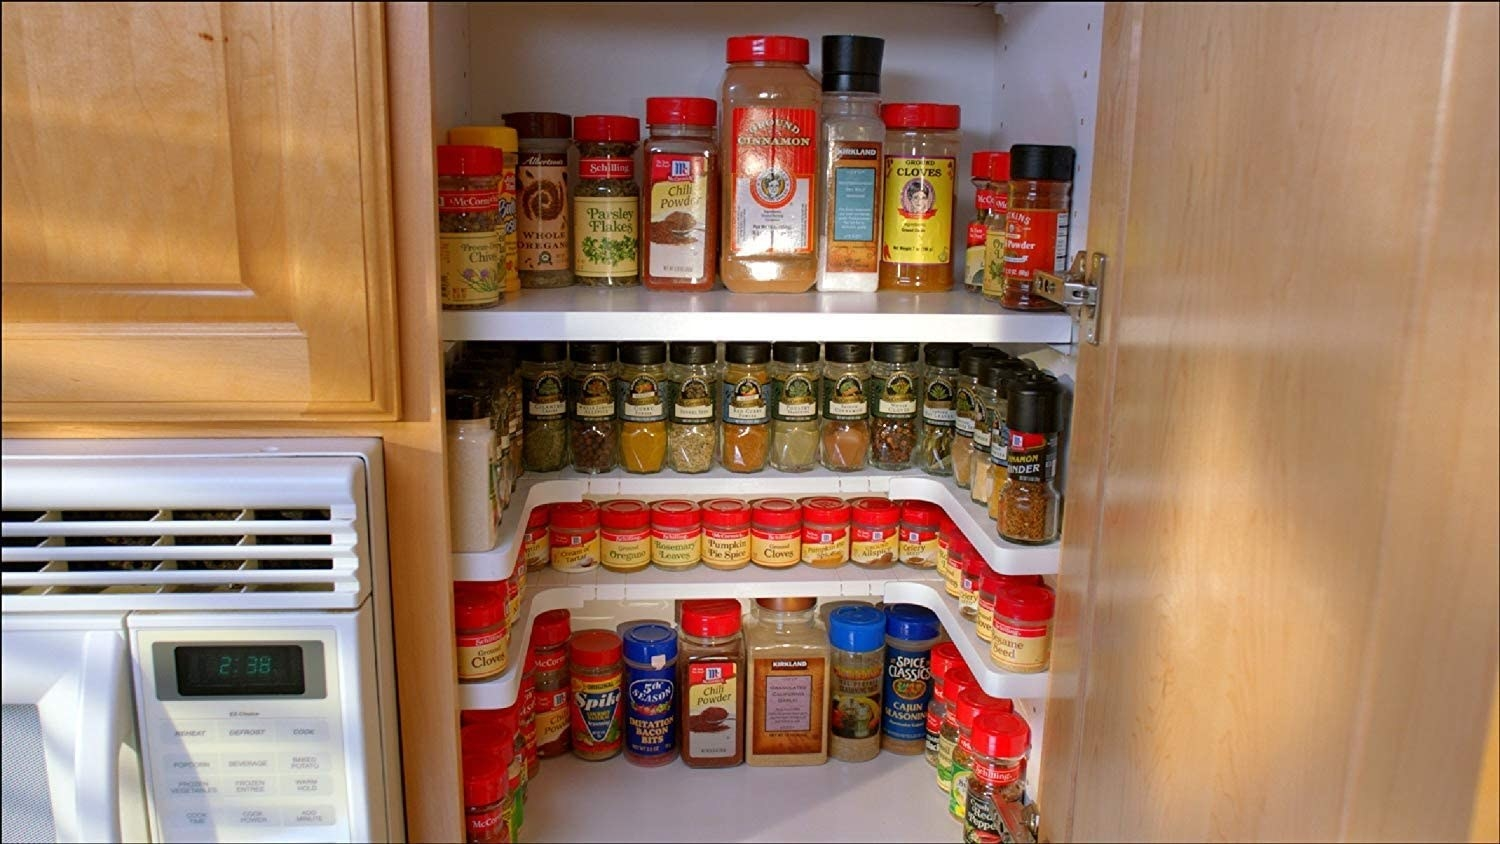 spices in a U-shaped shelving unit in a cabinet